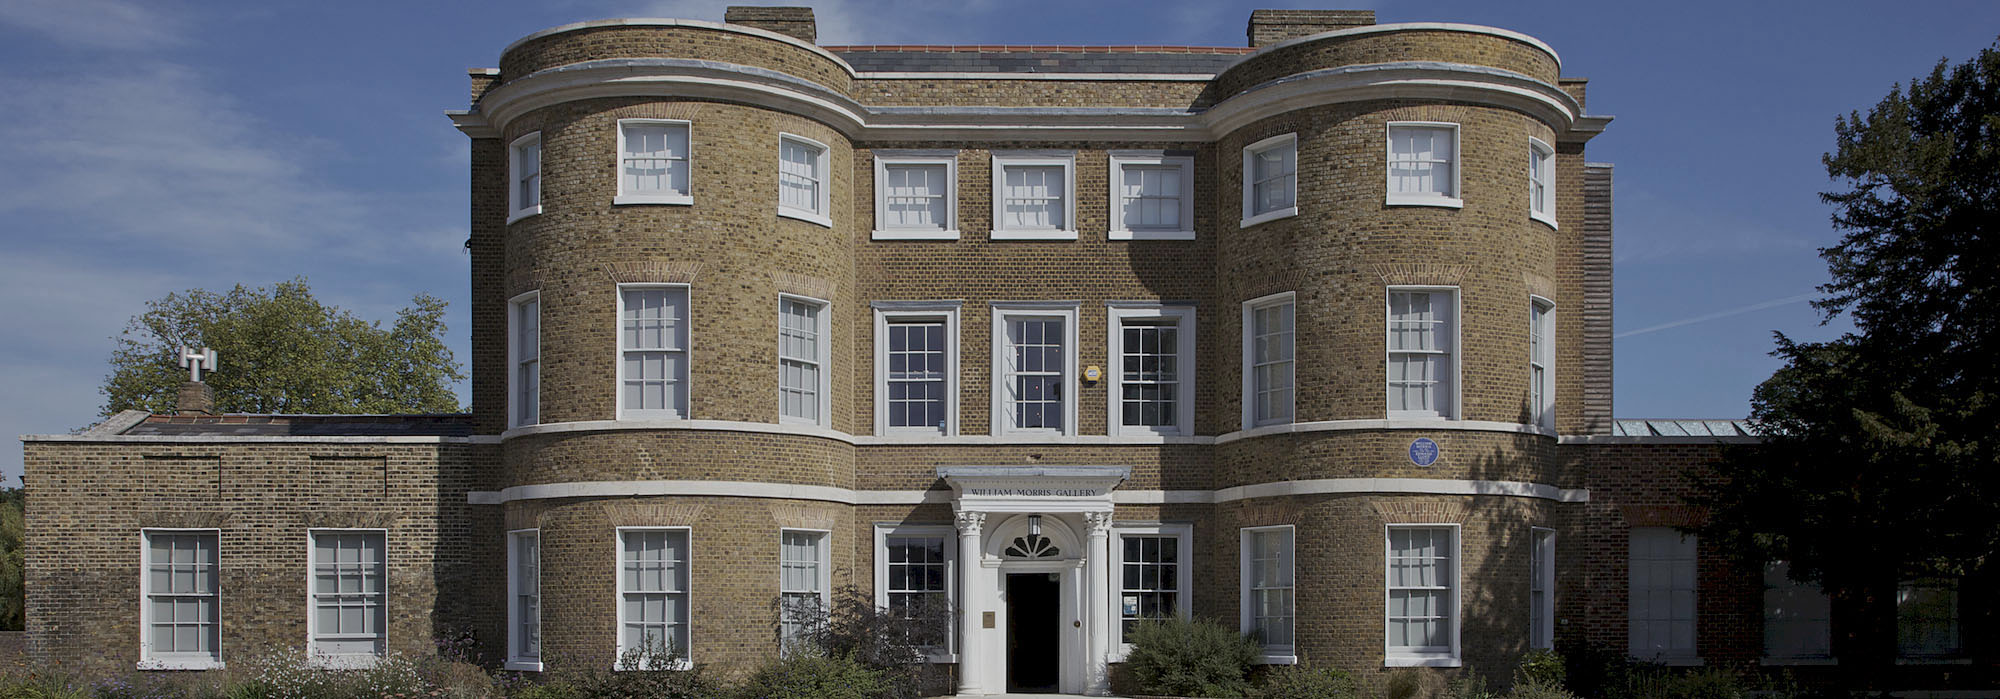 London & Essex's Premier Property Lettings, Sales and Management Specialists